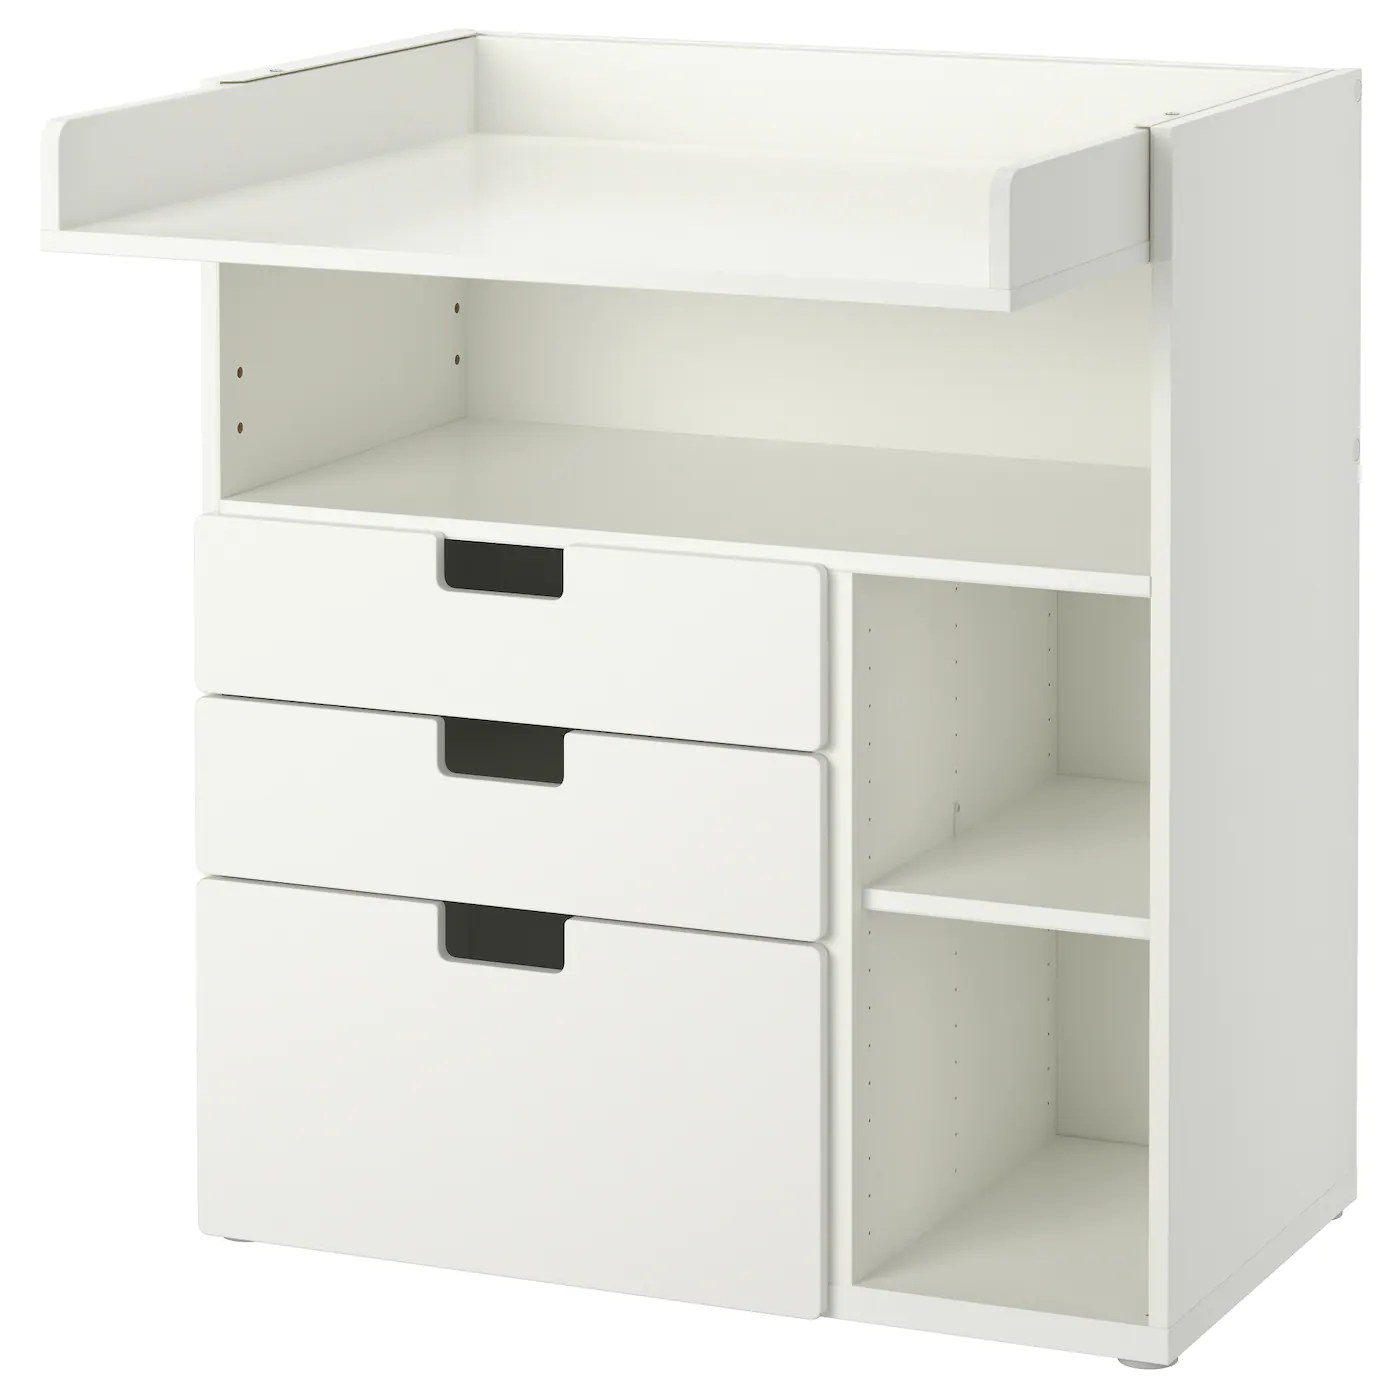 Mueble Cambiador Bebe Ikea Stuva Changing Table With 3 Drawers White 90x79x102 Cm Ikea